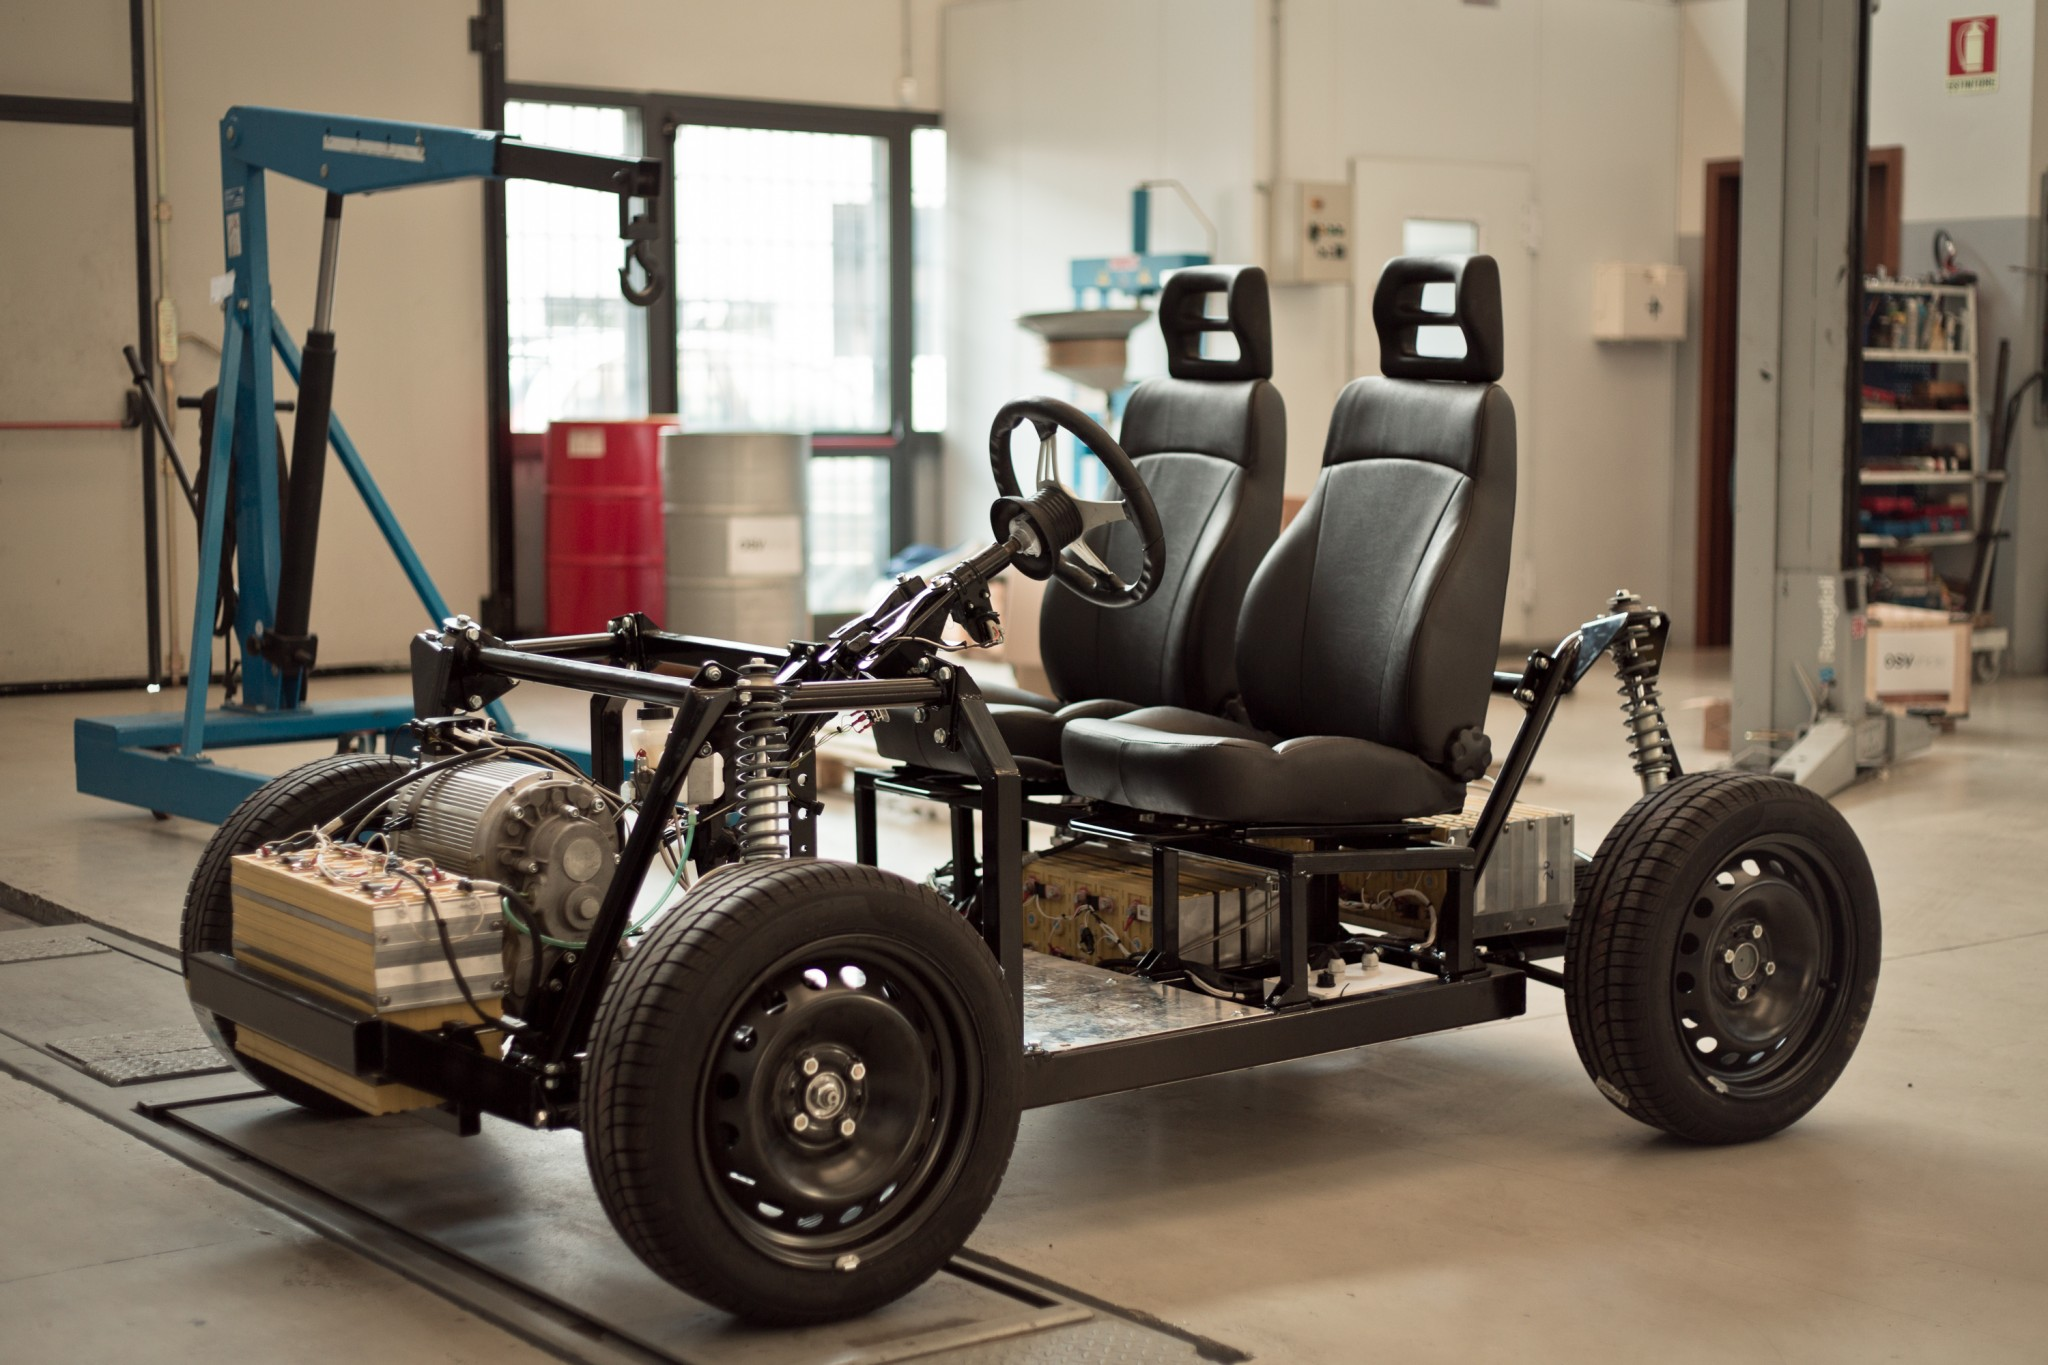 Do it yourself: an electric vehicle designer, which the driver will have to assemble himself